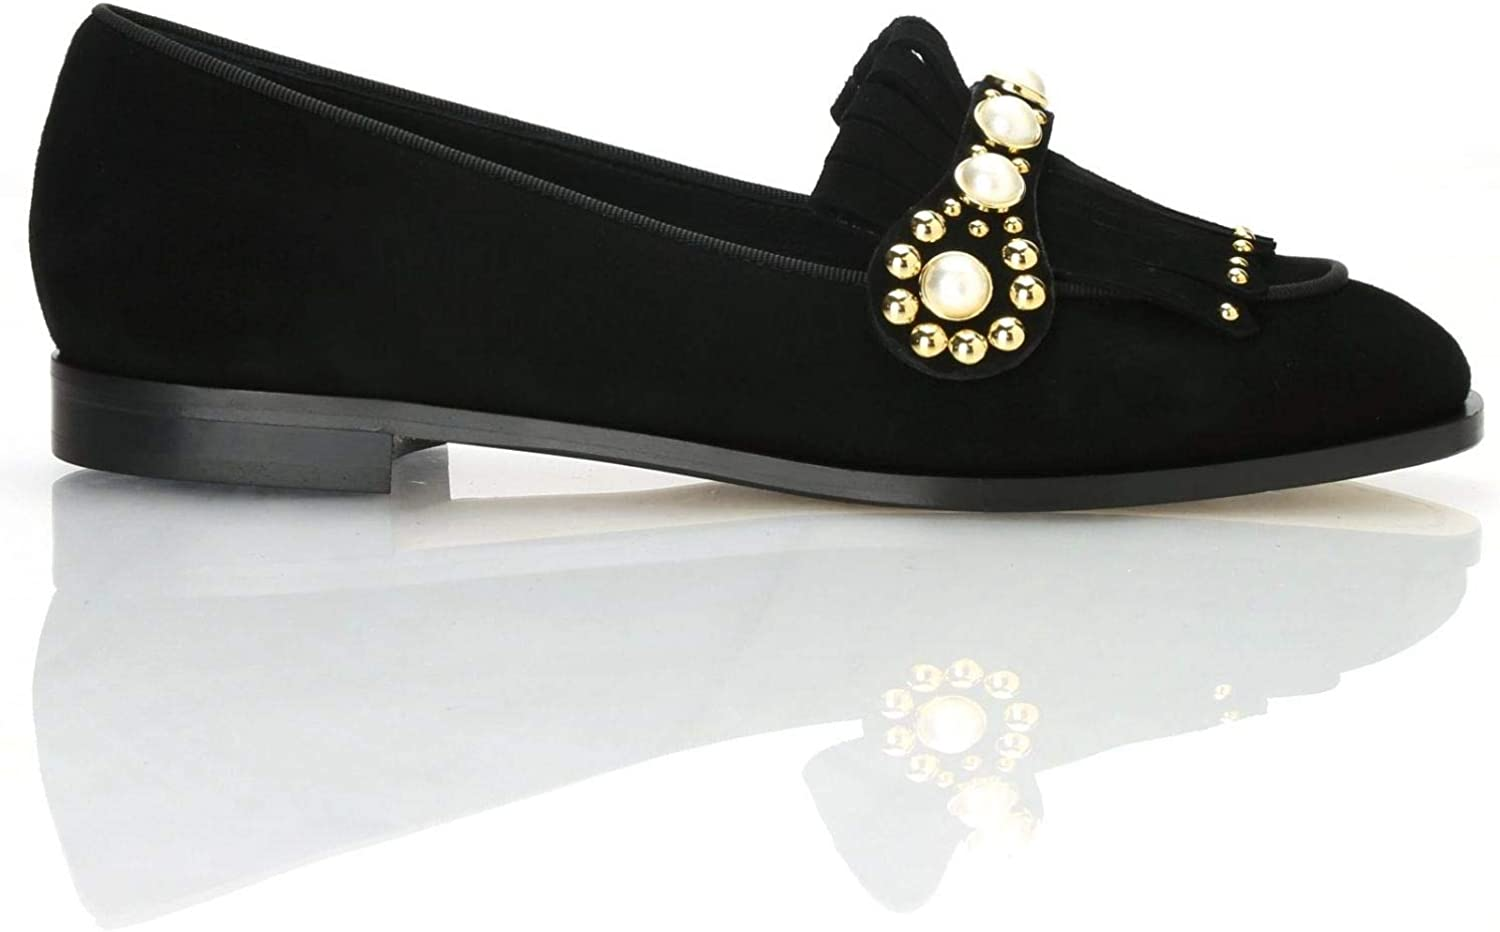 NINALILOU - Slippers Assia in schwarz Suede with Pearls Pearls - 272561ASSIA 152  hohes Ansehen